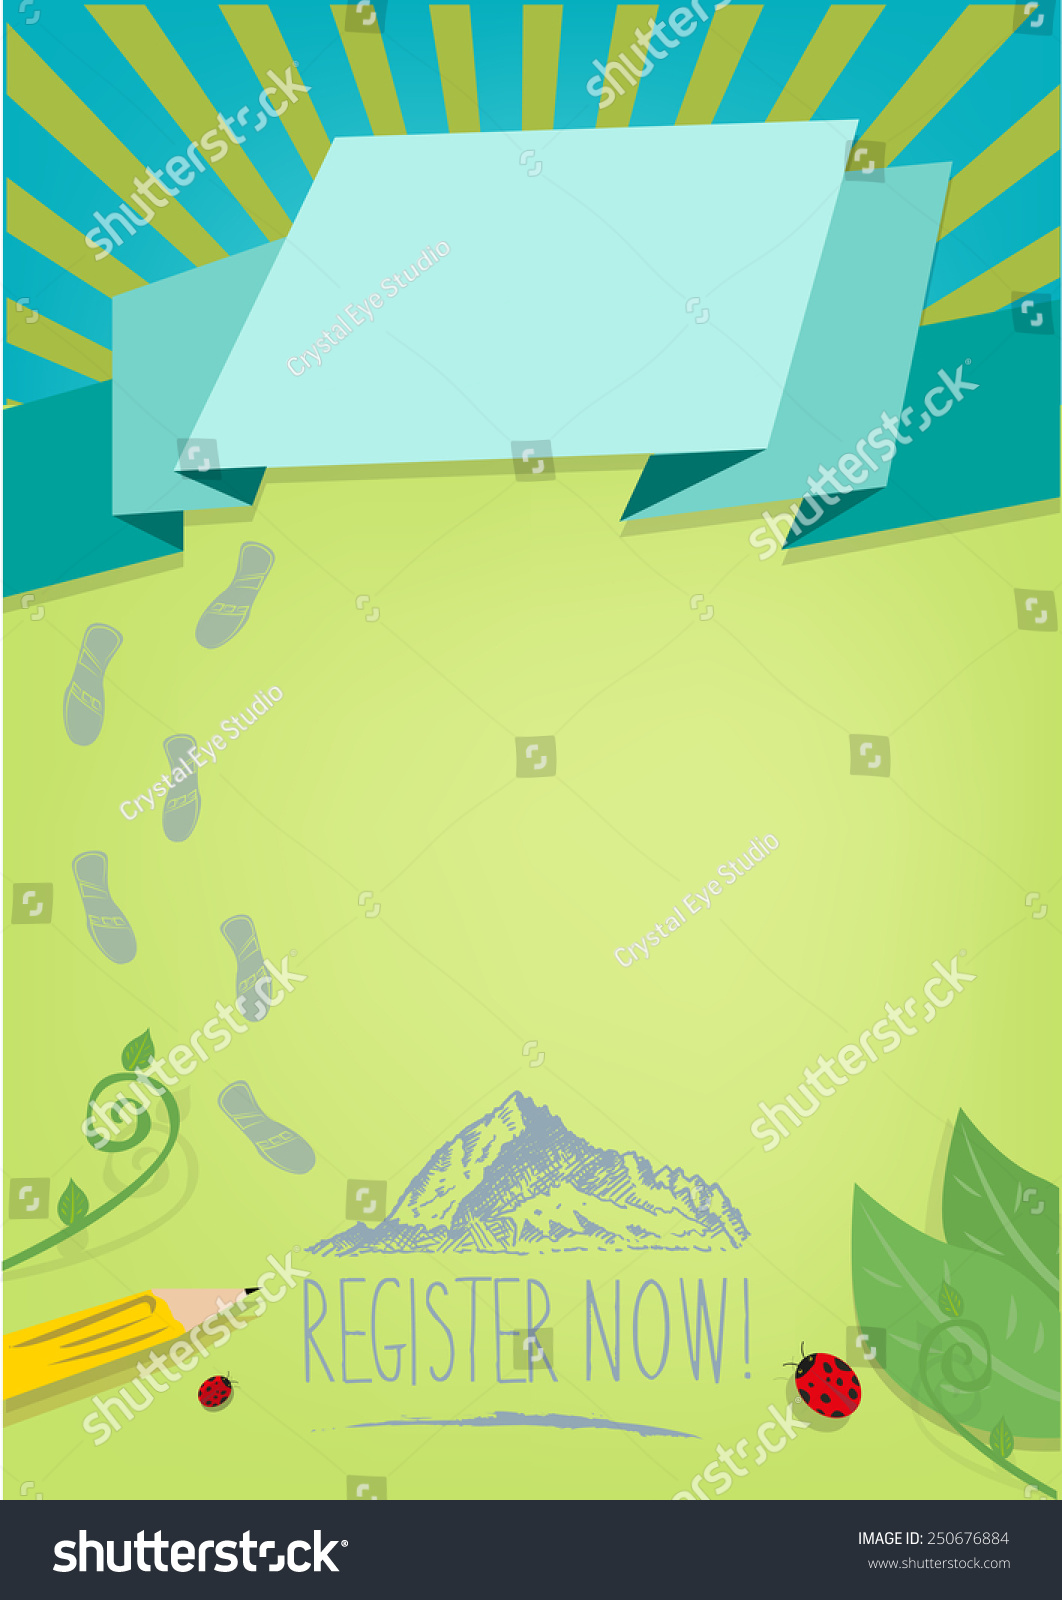 hiking running registration design background posters stock vector